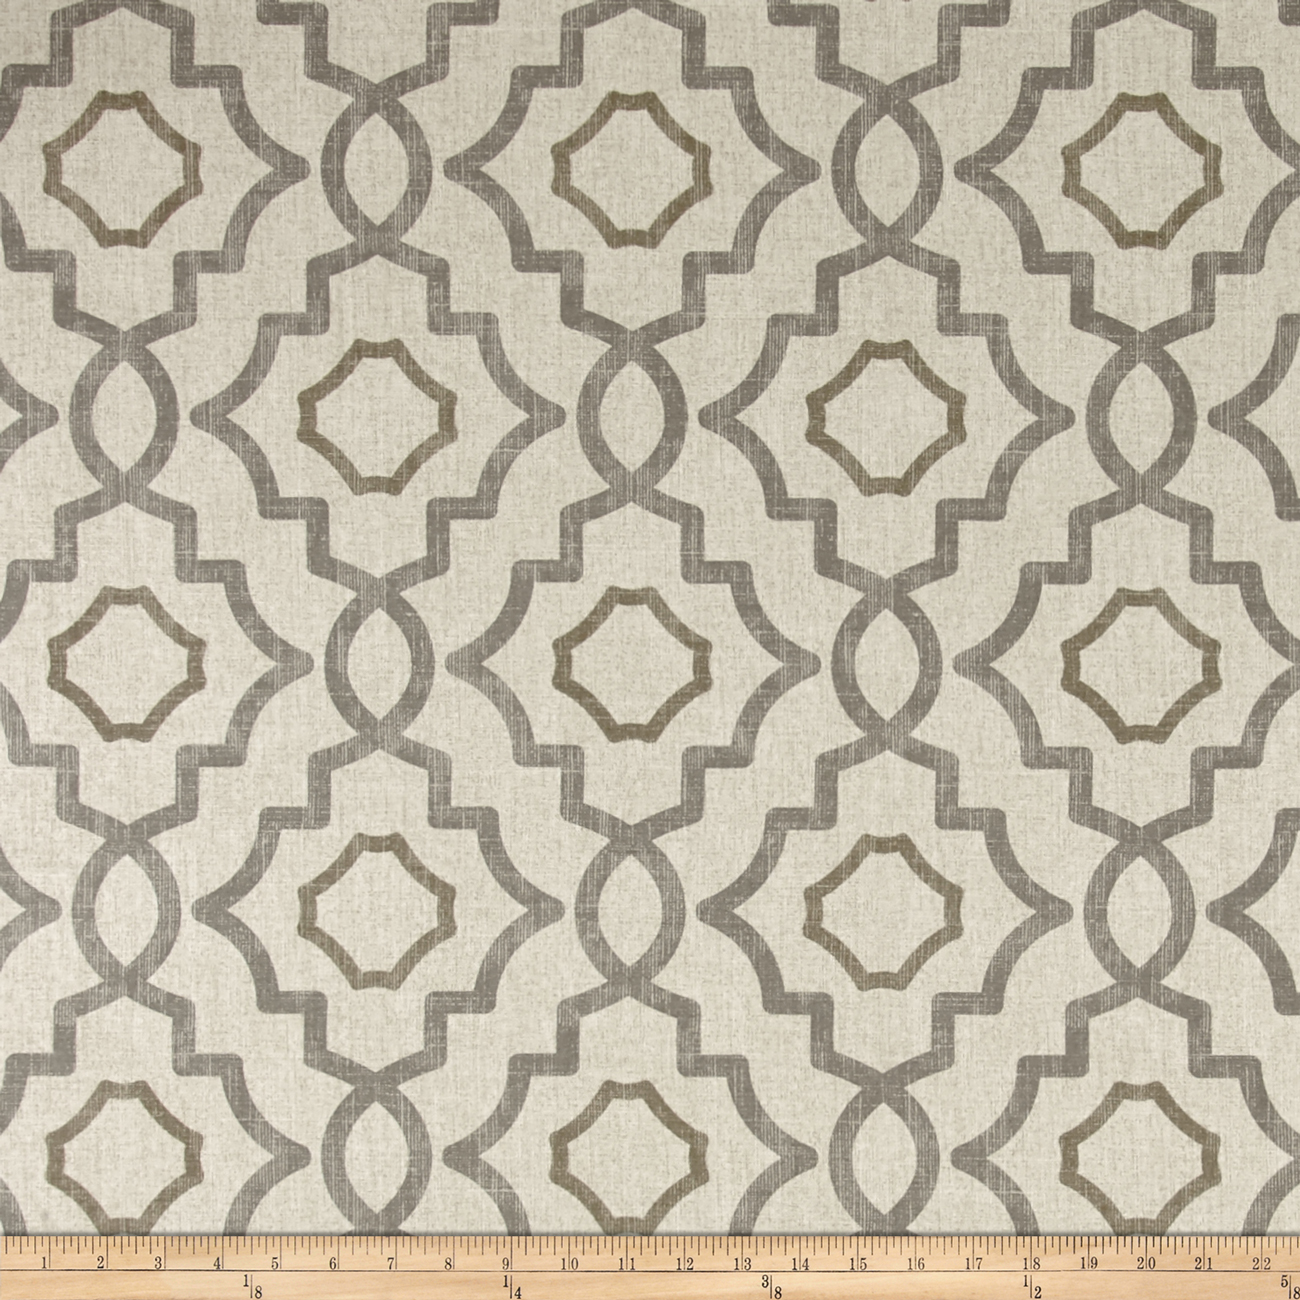 Magnolia Home Fashions Talbot Metal Fabric by Magnolia in USA